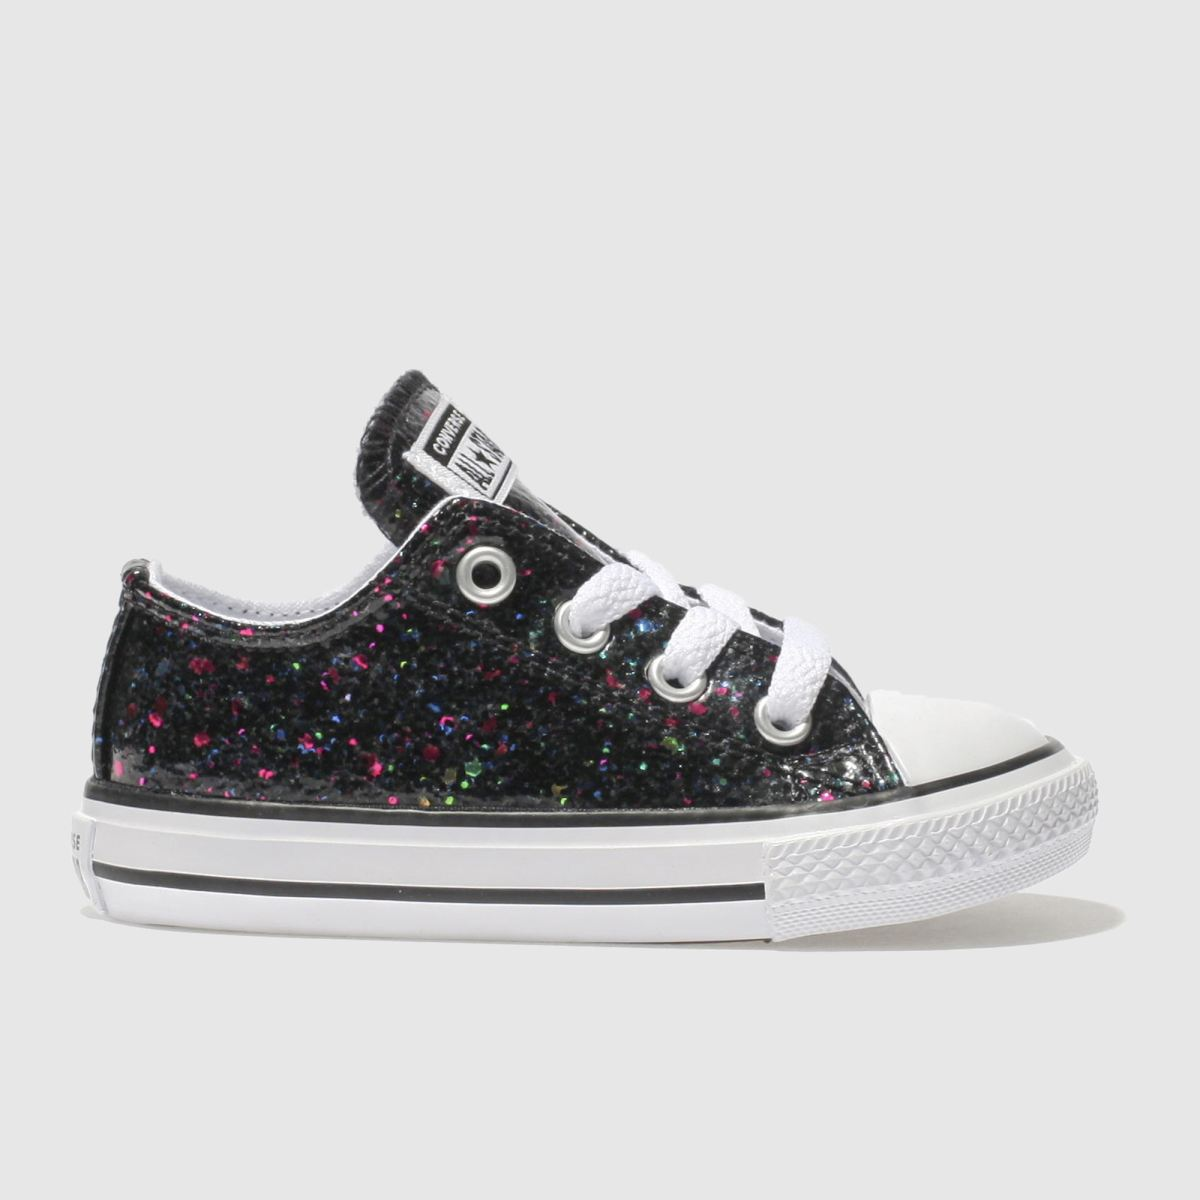 Converse Black All Star Lo Glitter Girls Toddler Toddler